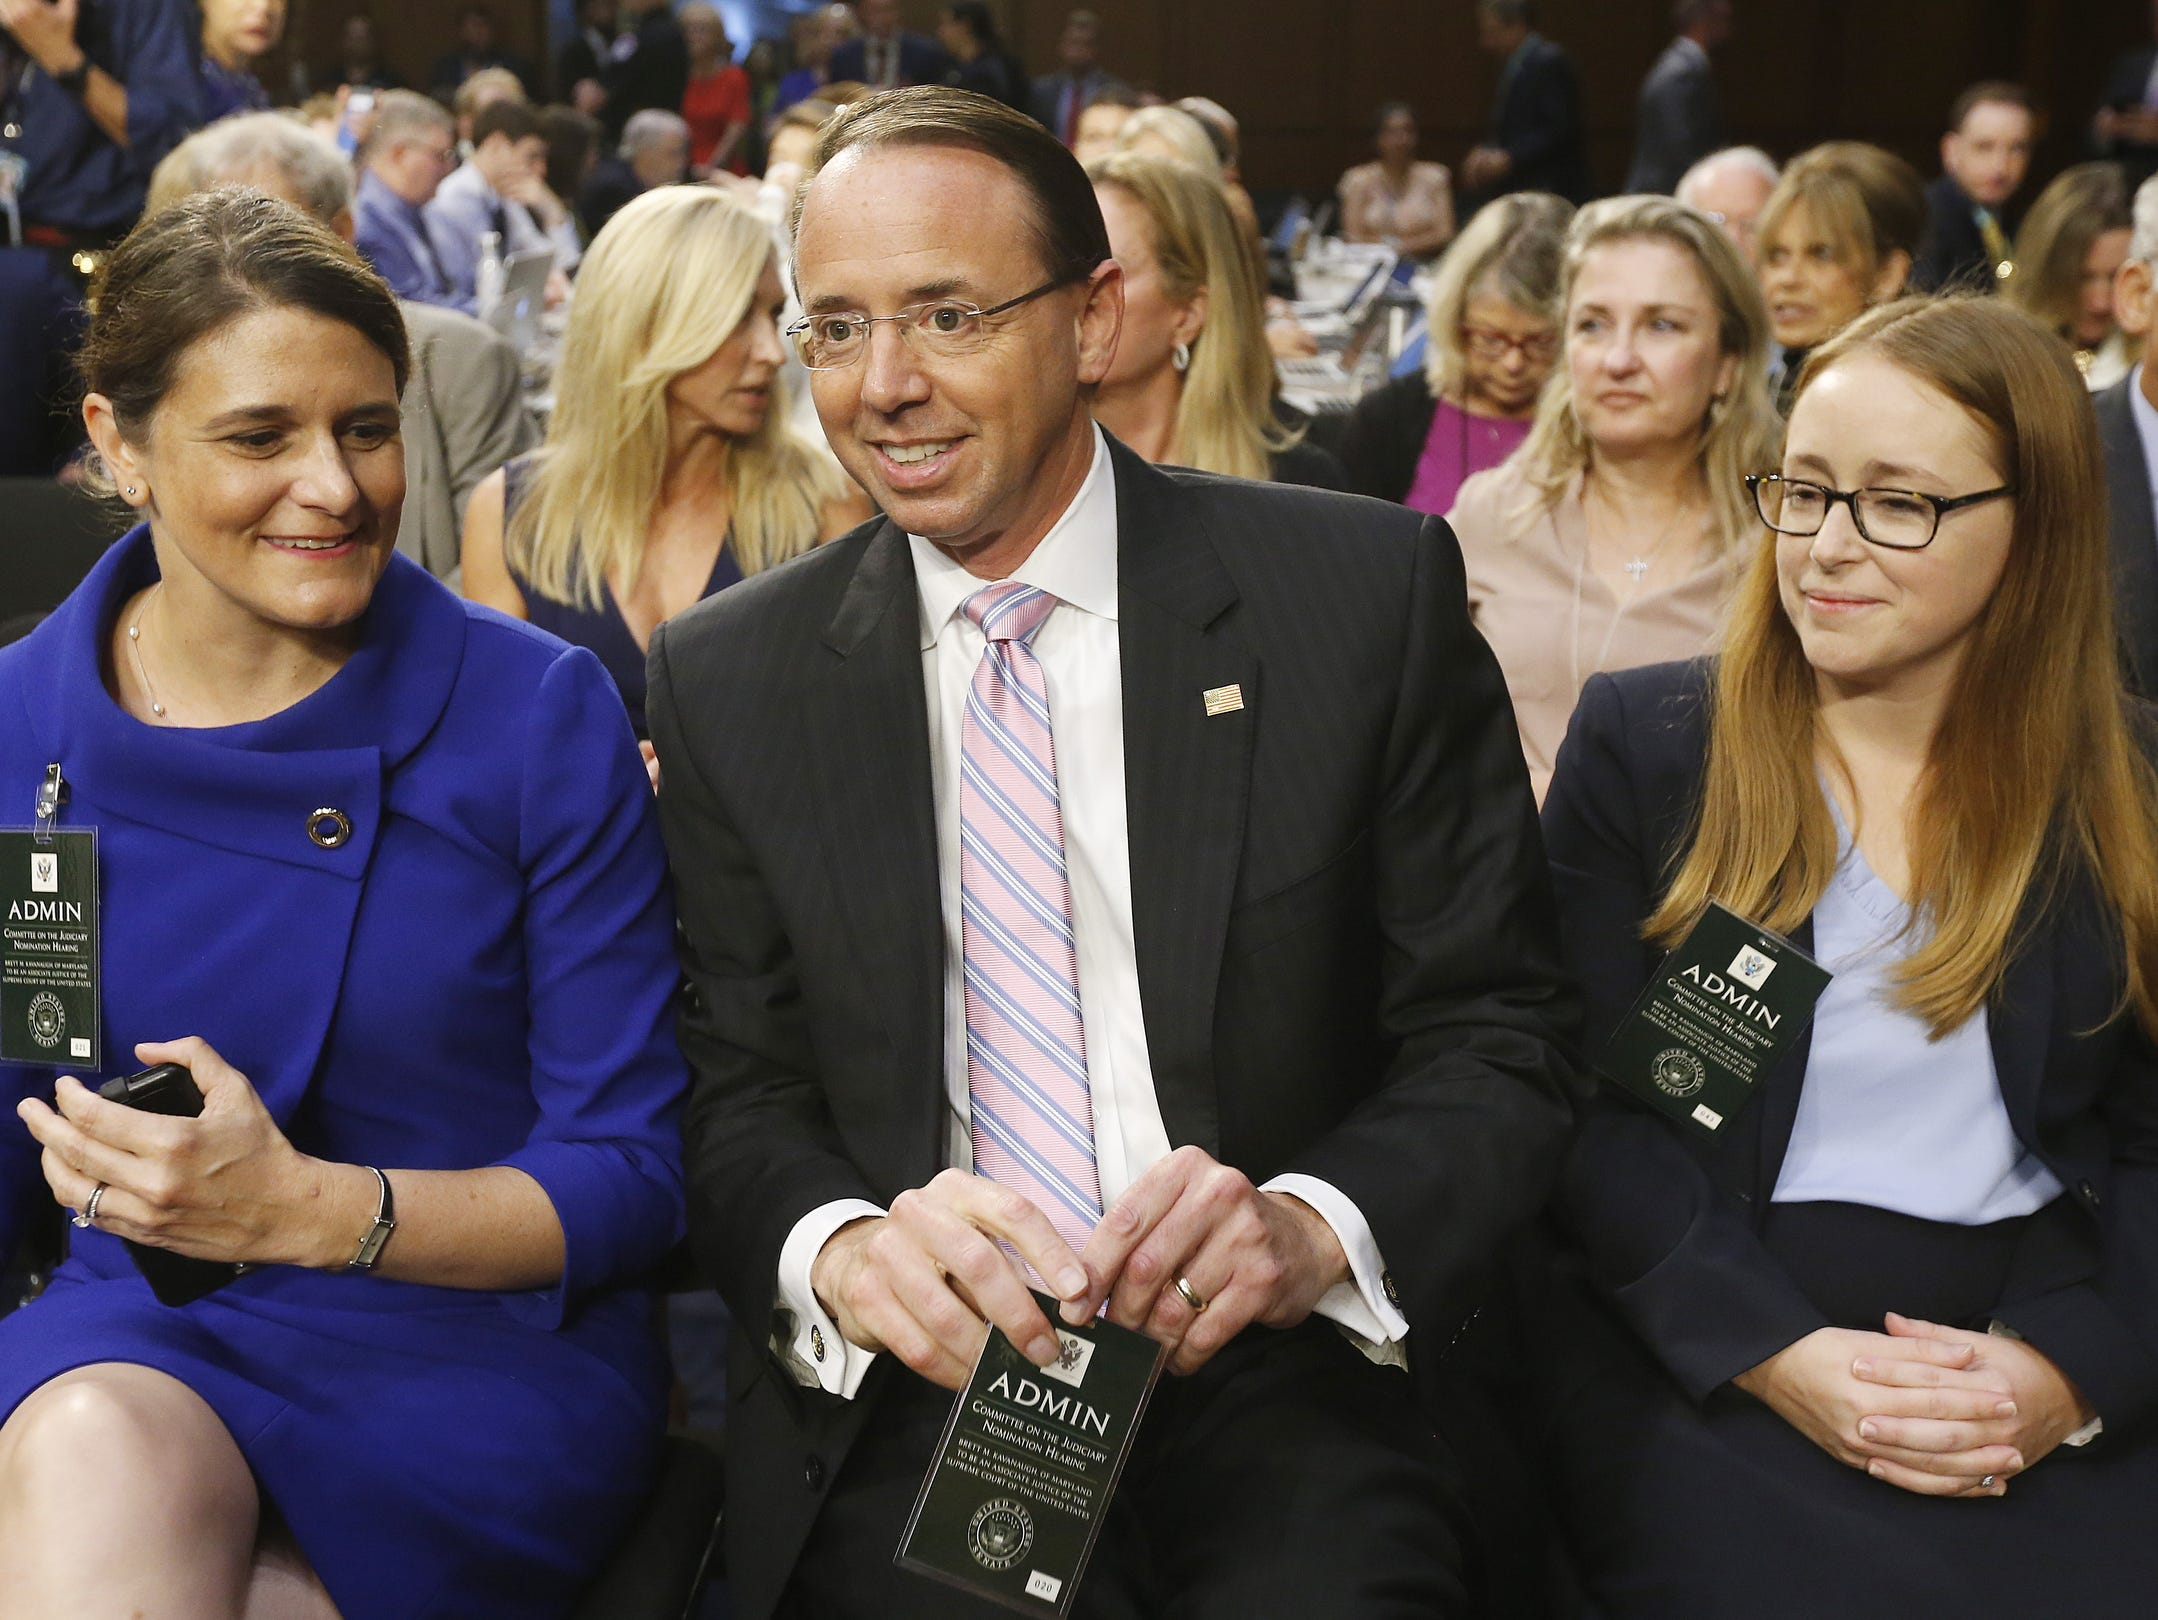 US Deputy Attorney General Rod Rosenstein (C) arrives for Circuit judge Brett Kavanaugh's Senate confirmation hearing to be an Associate Justice of the Supreme Court of the United States on Sept. 4, 2018.